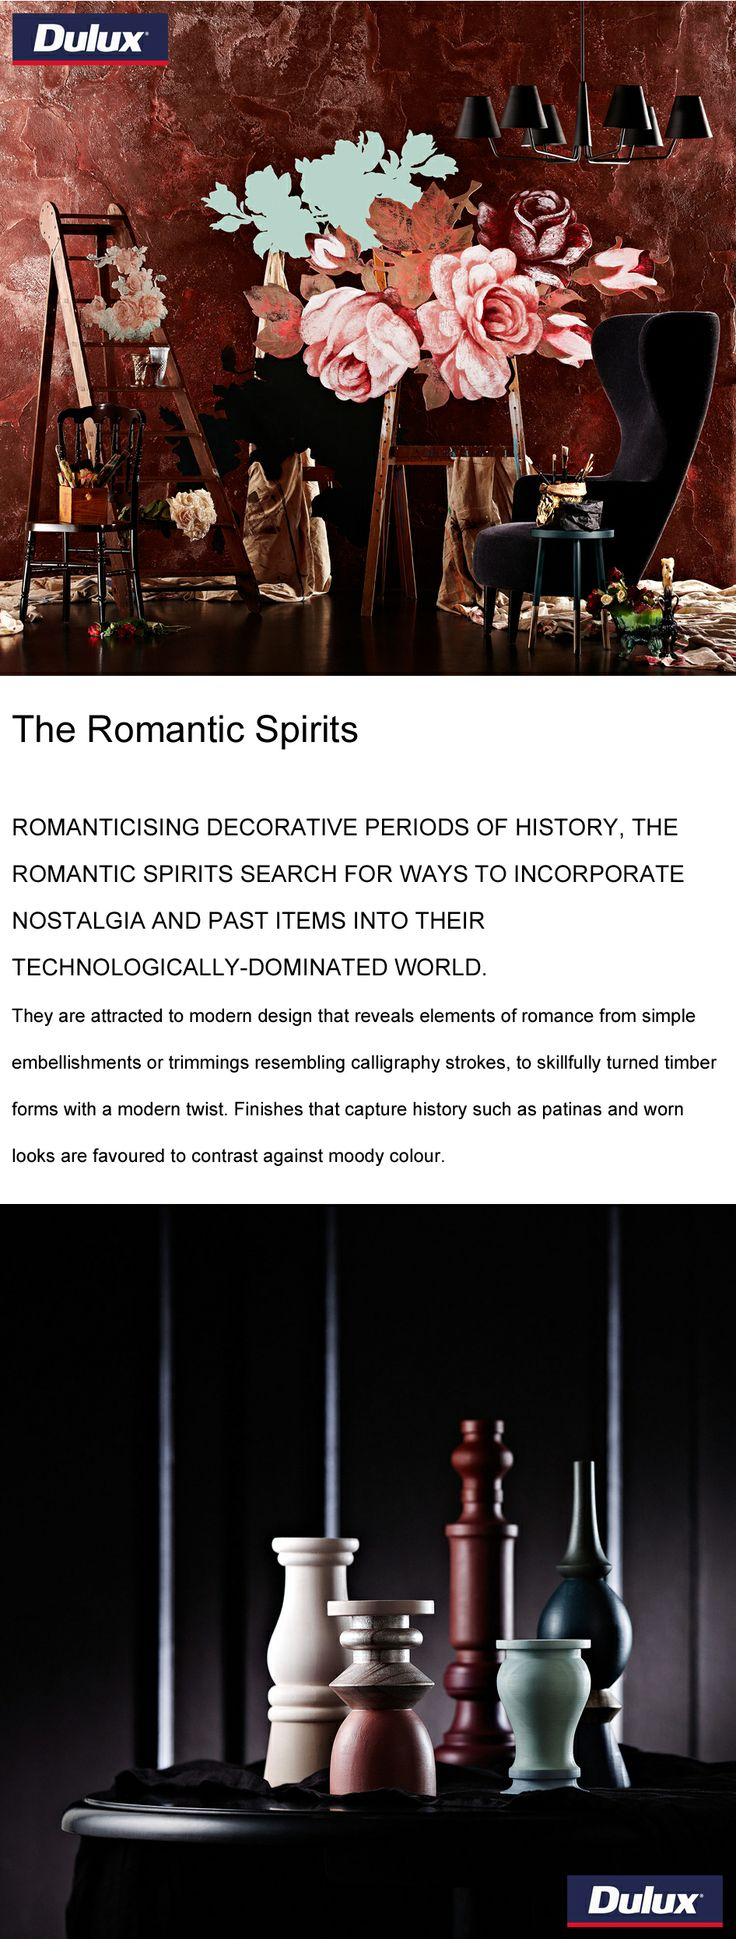 """The Romantic Spirits"" colour forecast from Dulux for 2014.   www.lahood.co.nz"